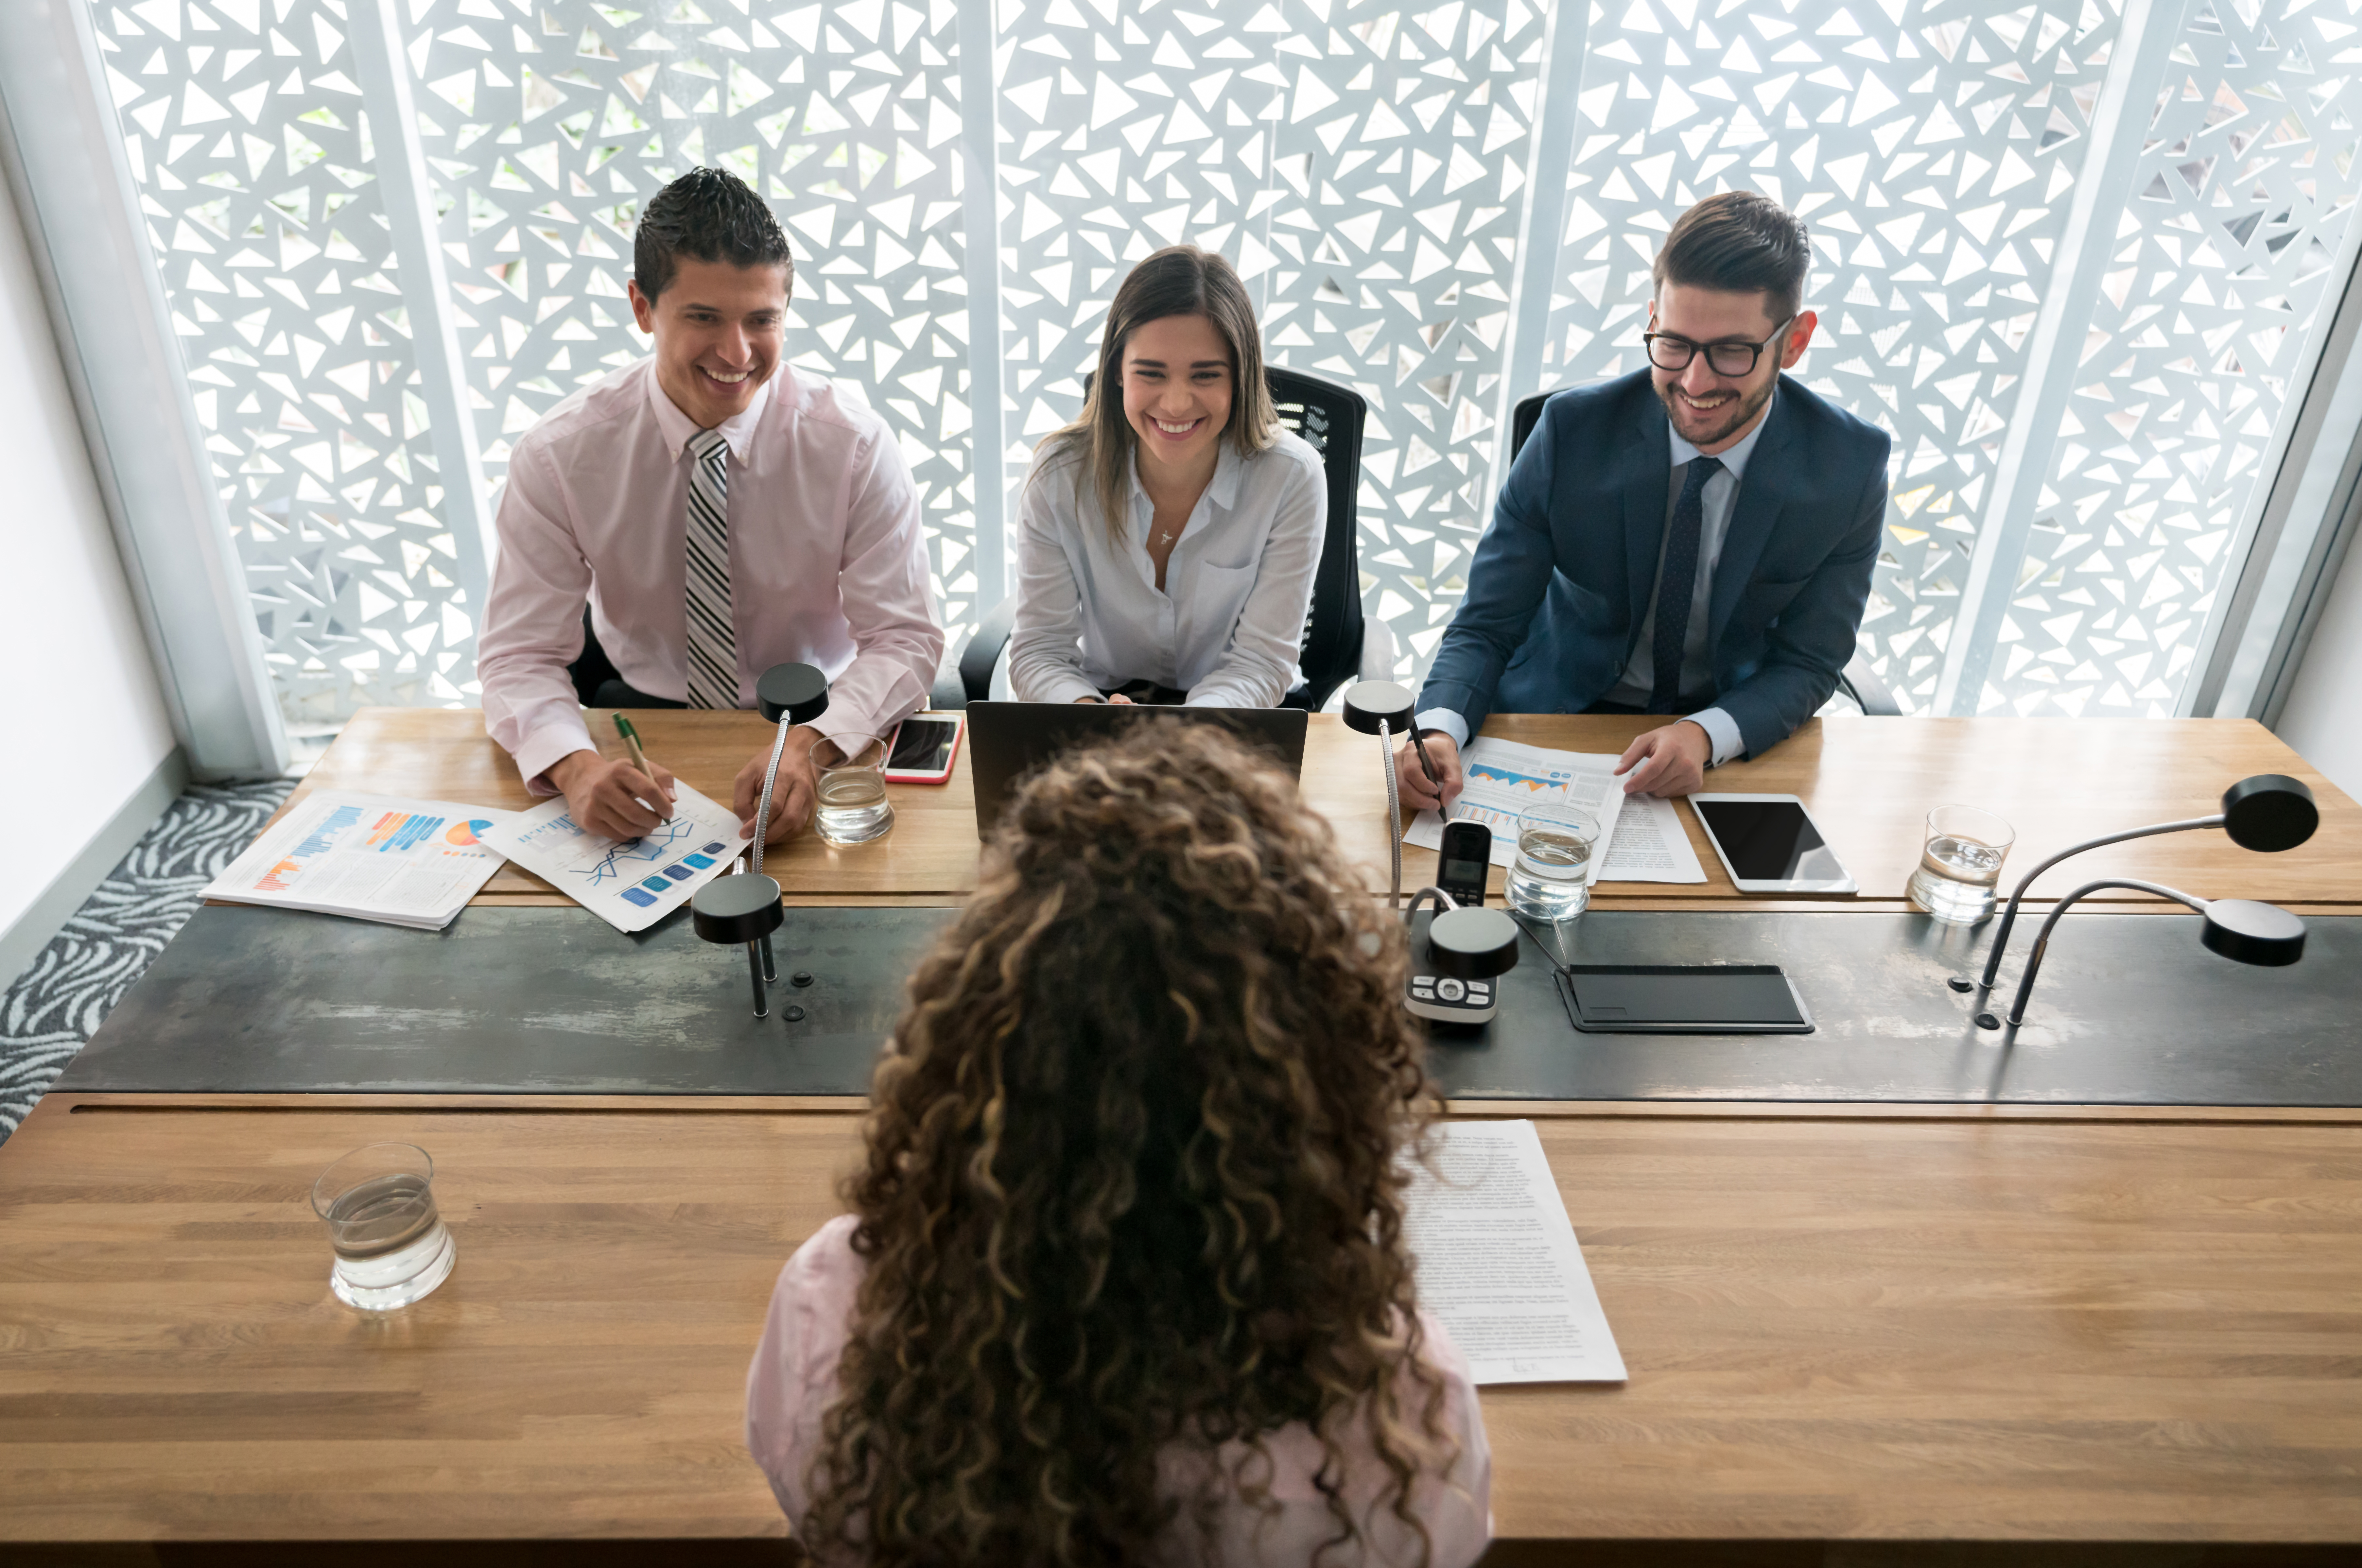 How To Inquire About A Job After An Interview Chron Com